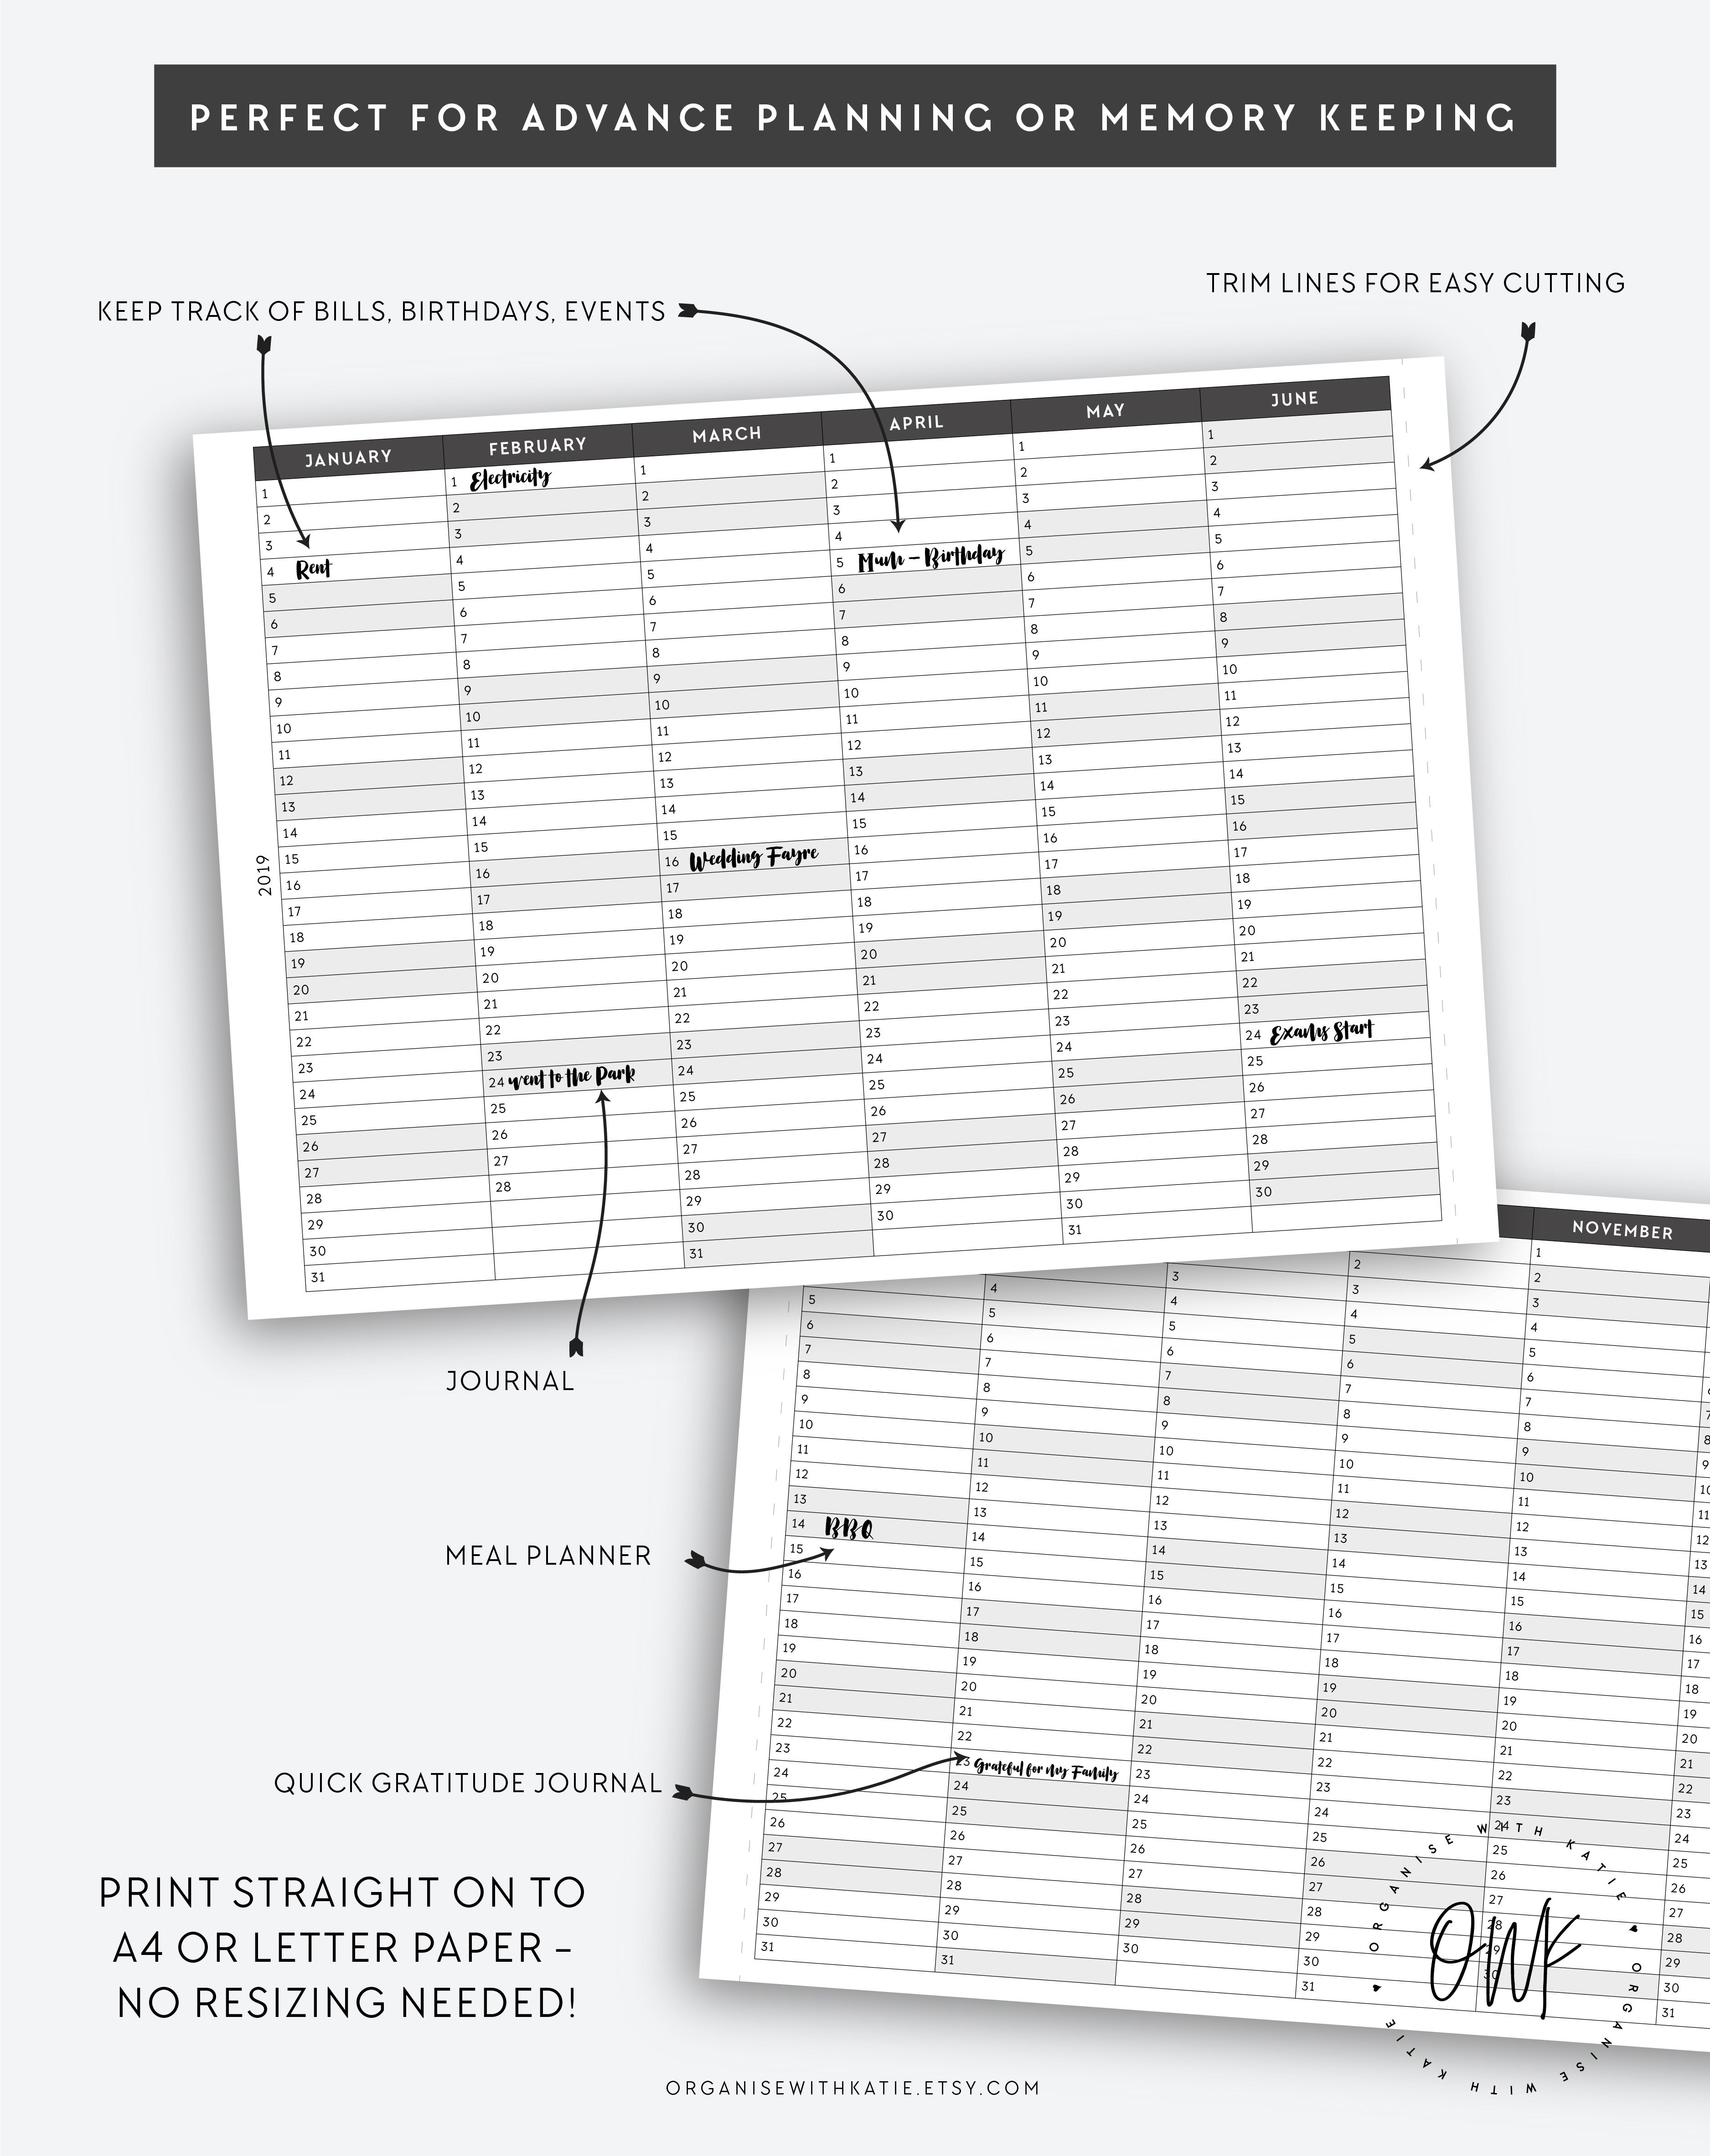 A5 2019 2020 2021 2022 2023 1 Year Planner Fold Out Overview